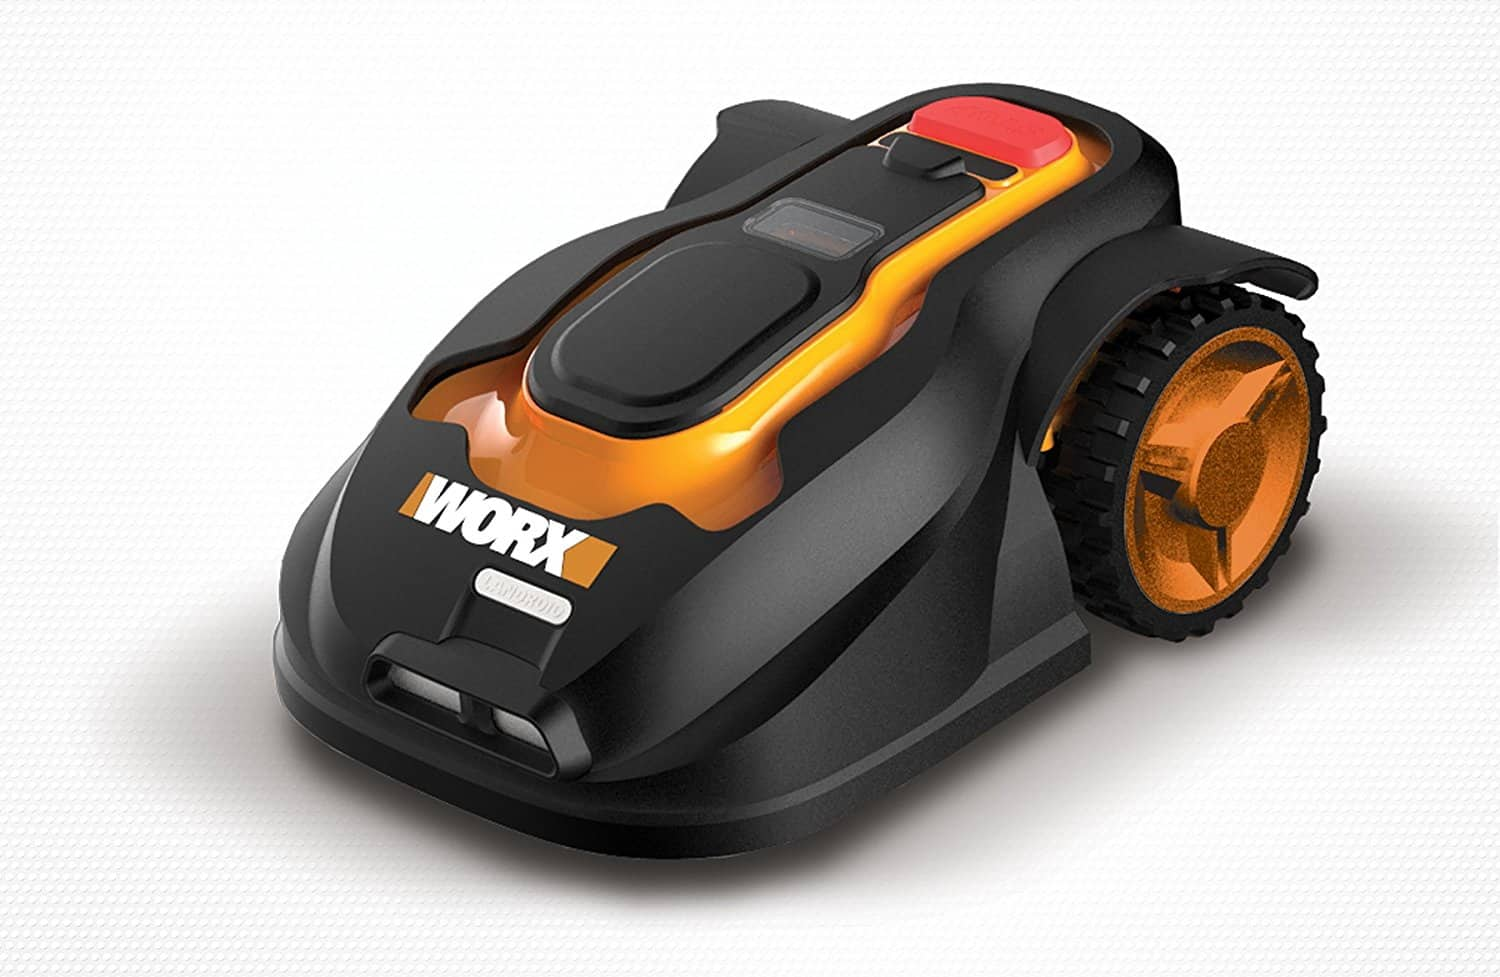 Robotic lawn mower with rain sensor and safety shut-off.